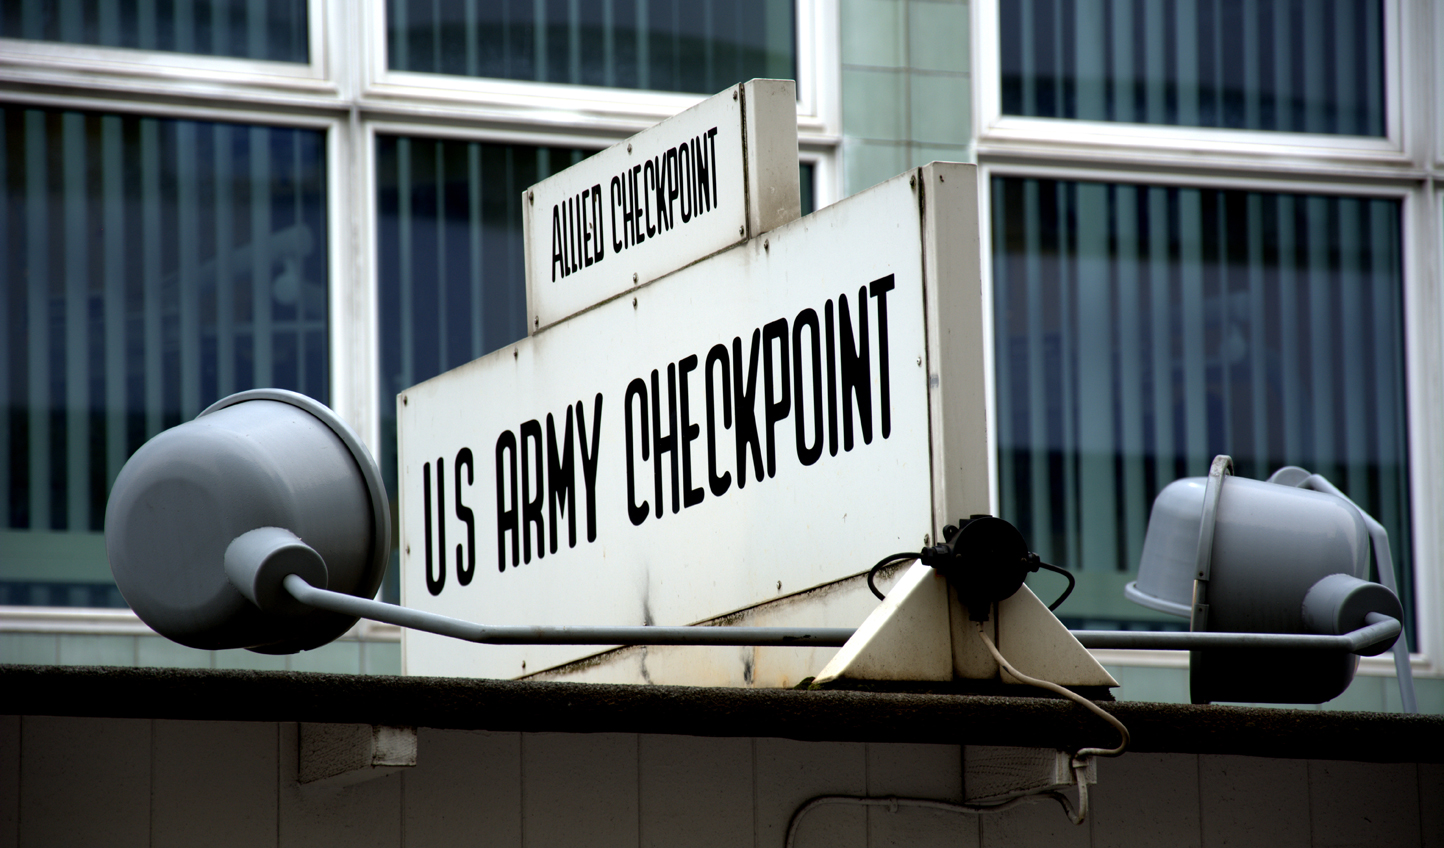 Stop off at Checkpoint Charlie